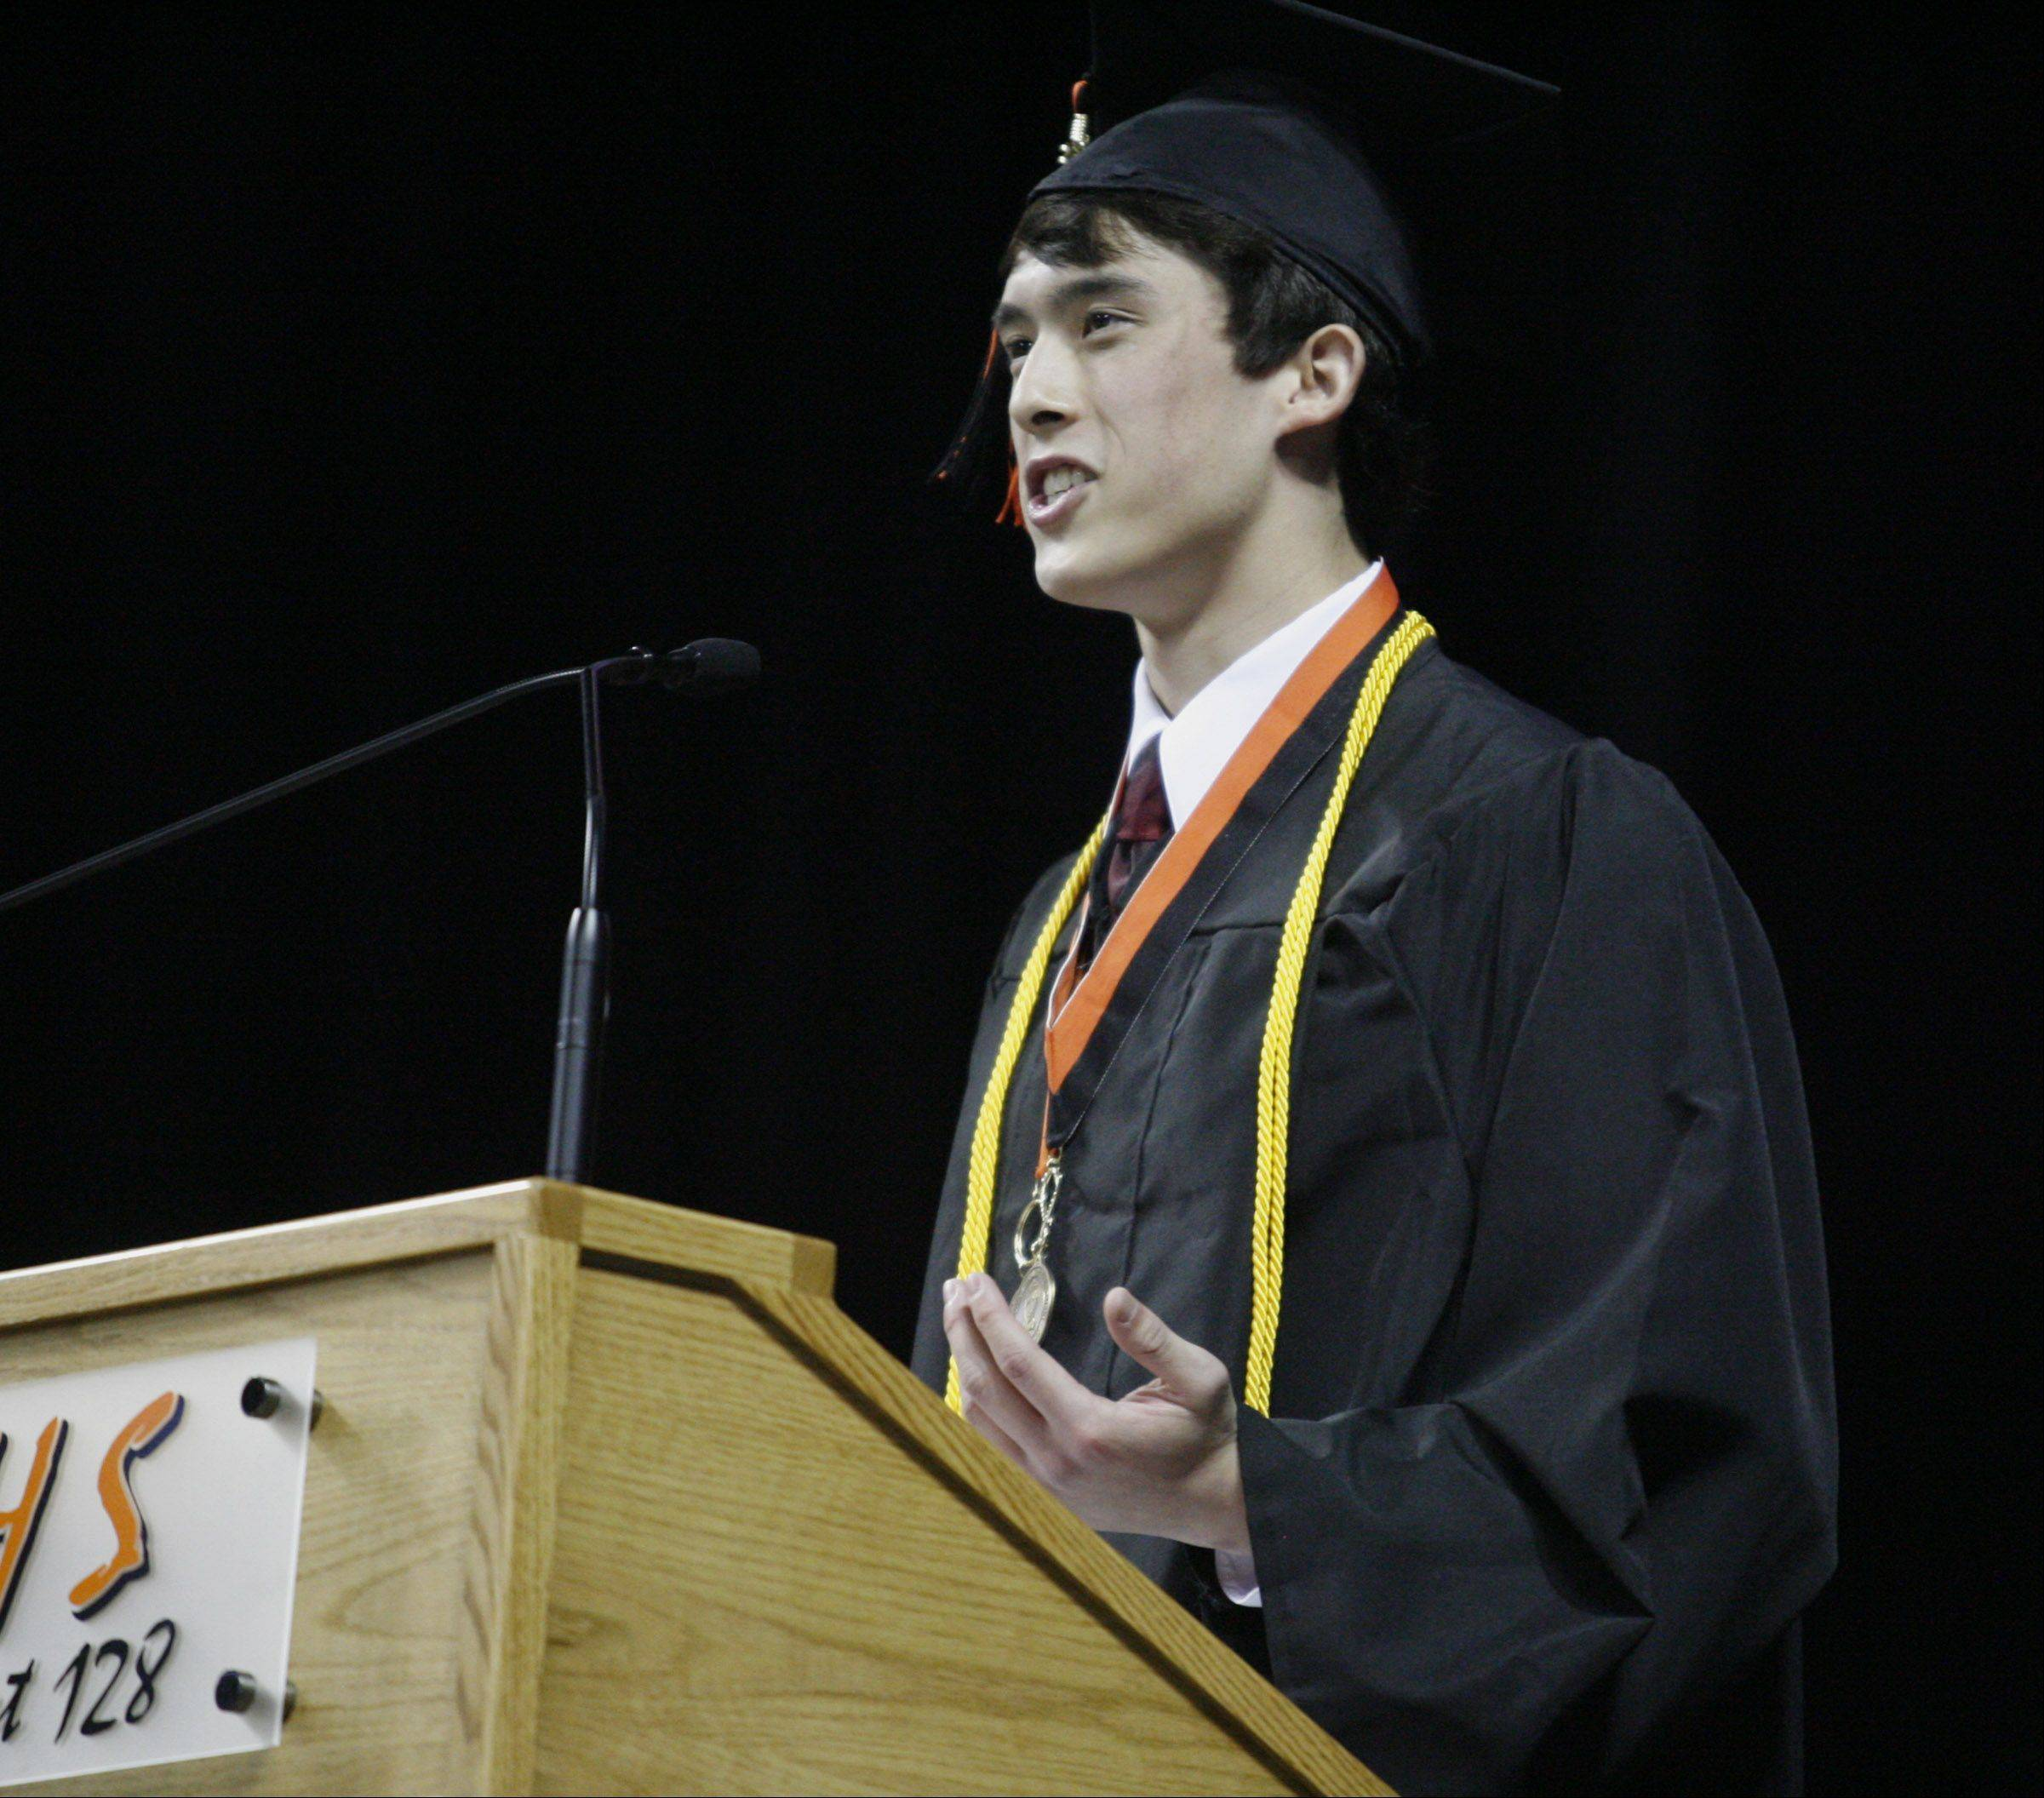 Luke San, class of 2012, speaks to graduates during Libertyville High School's graduation on Friday, June 1 at the Sears Centre in Hoffman Estates.